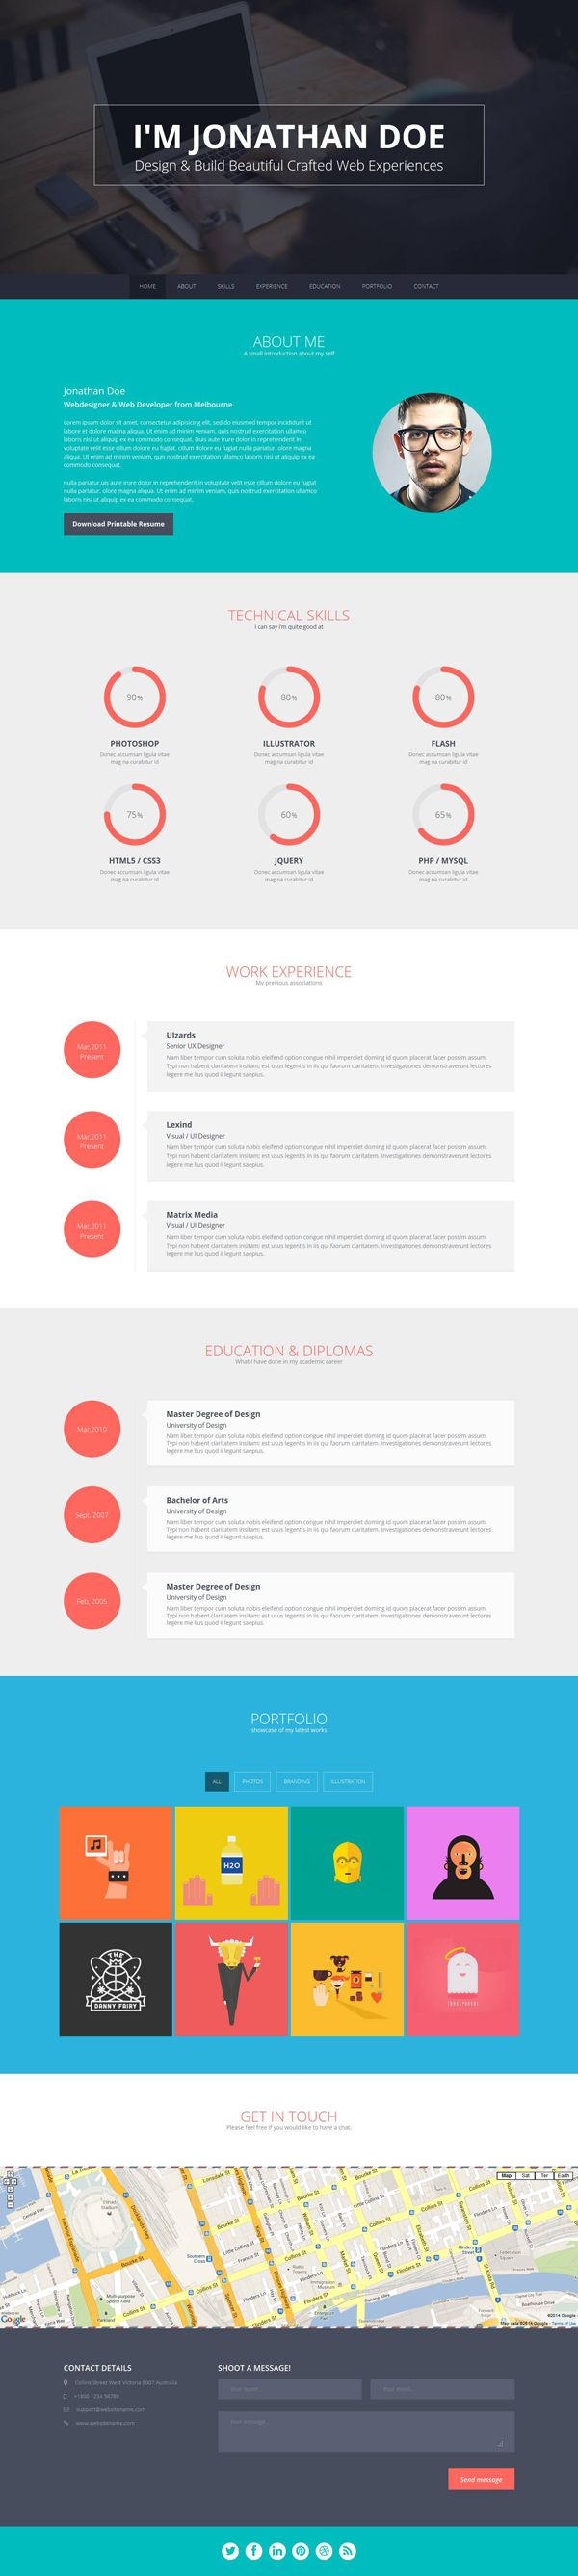 best ideas about online resume template flato responsive online cv resume templates